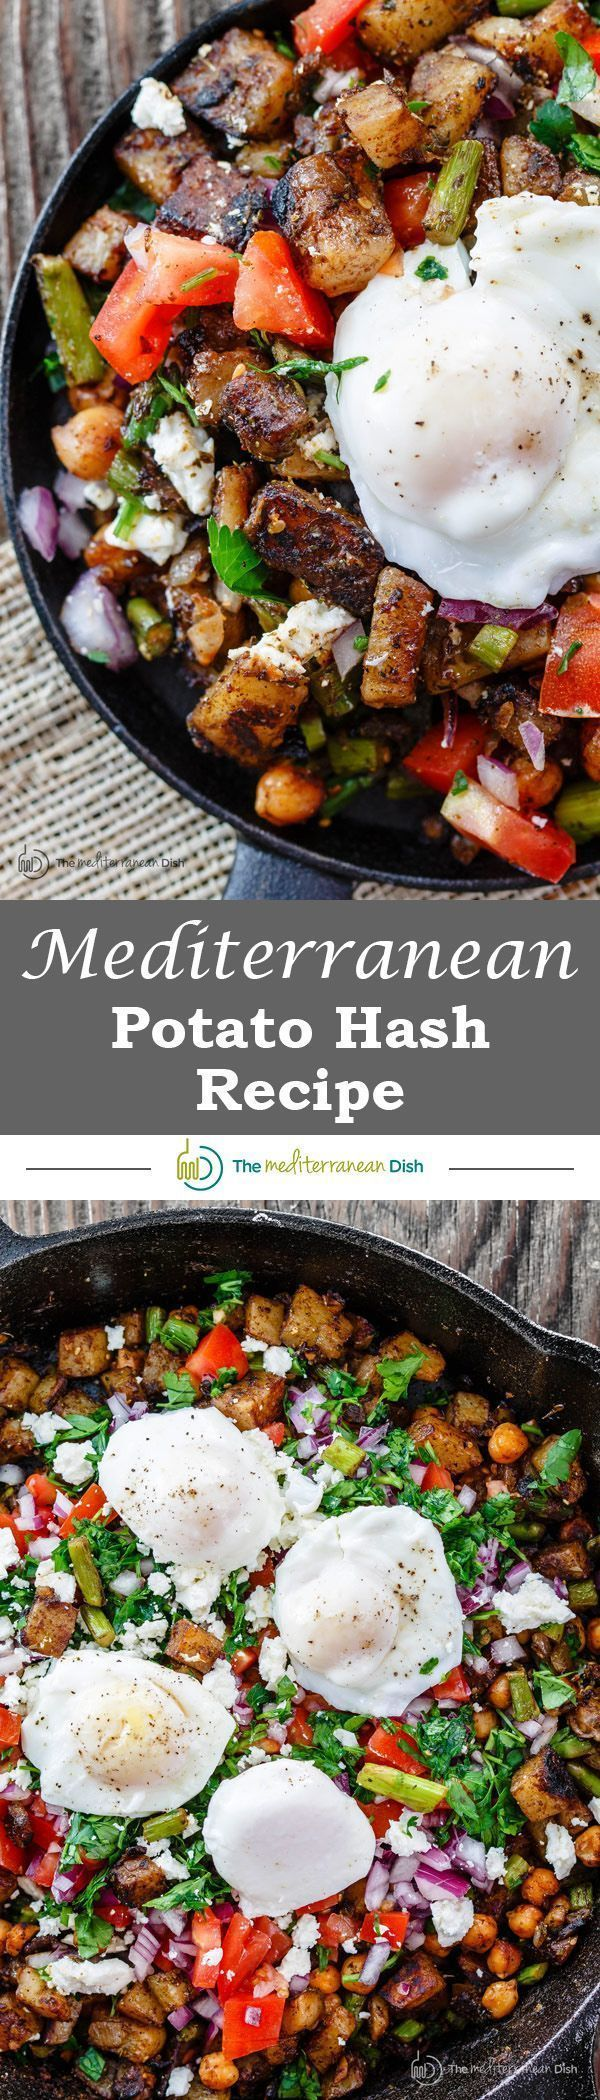 Mediterranean Potato Hash Recipe   The Mediterranean Dish. An easy breakfast hash with potatoes, chickpeas, asparagus, tomatoes and Mediterranean spices and fresh herbs. Comes together in less than 30 mins. See the step-by-step today on The Mediterranean Dish.